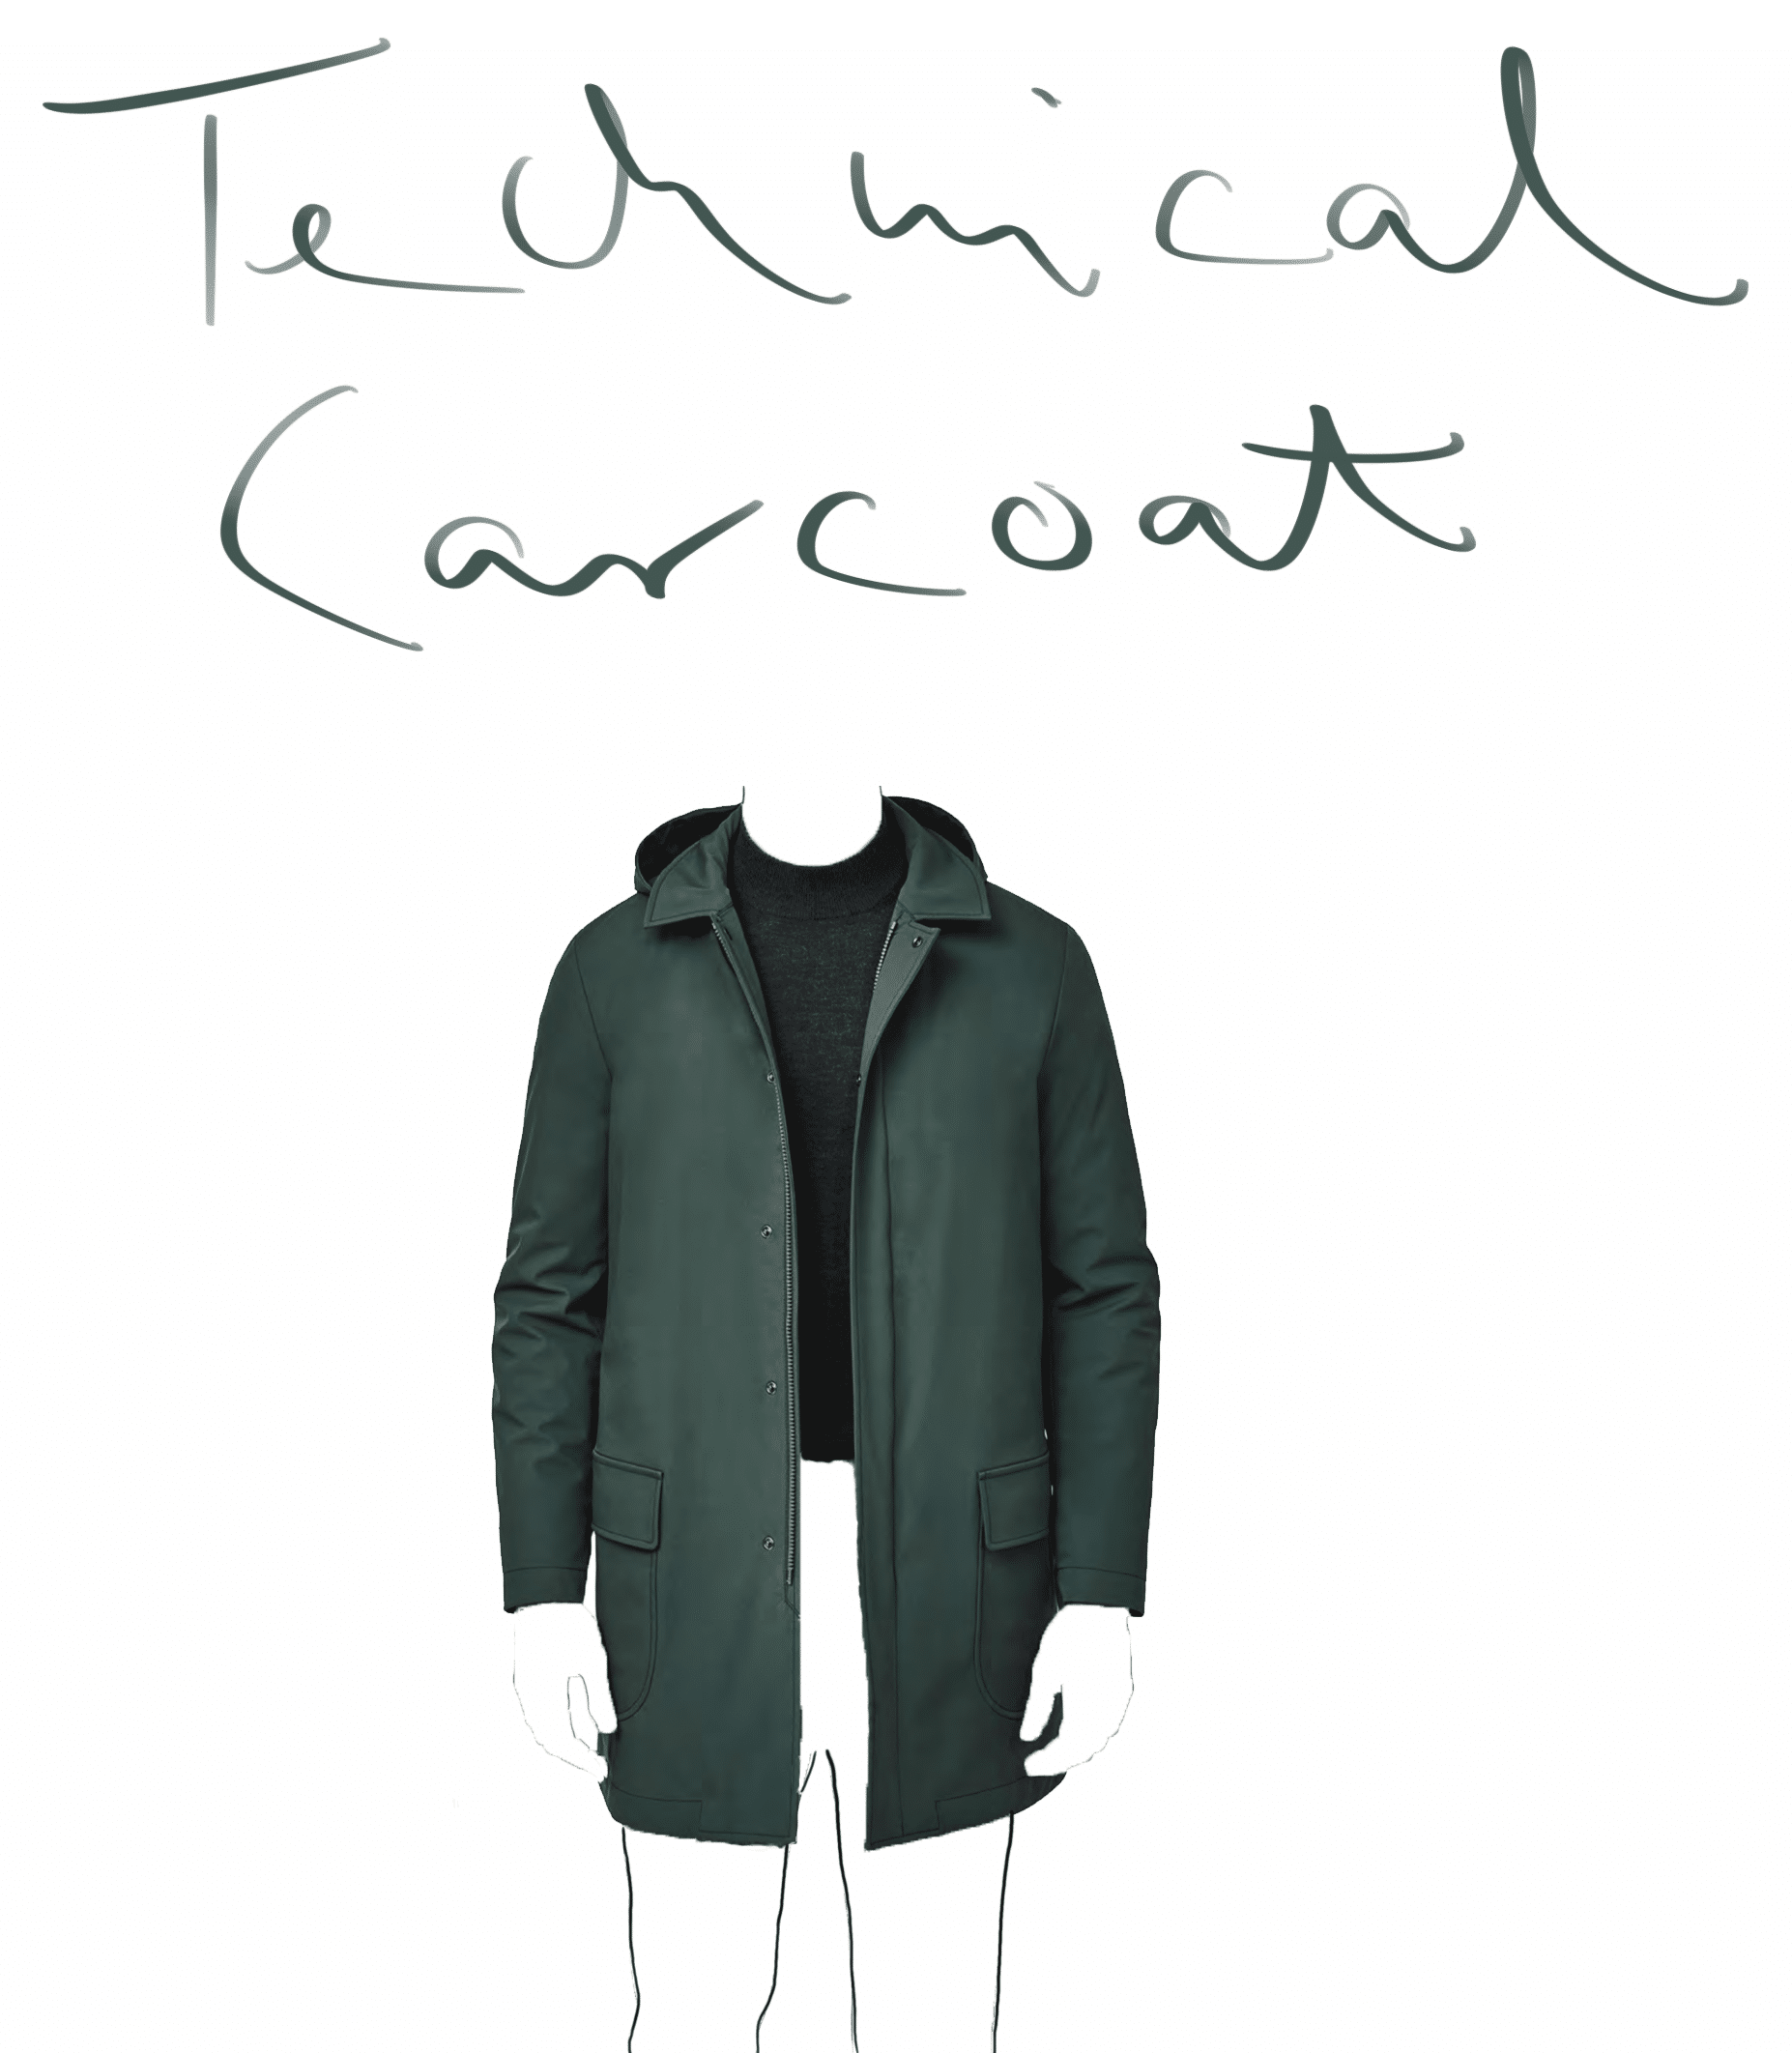 technical carcoat